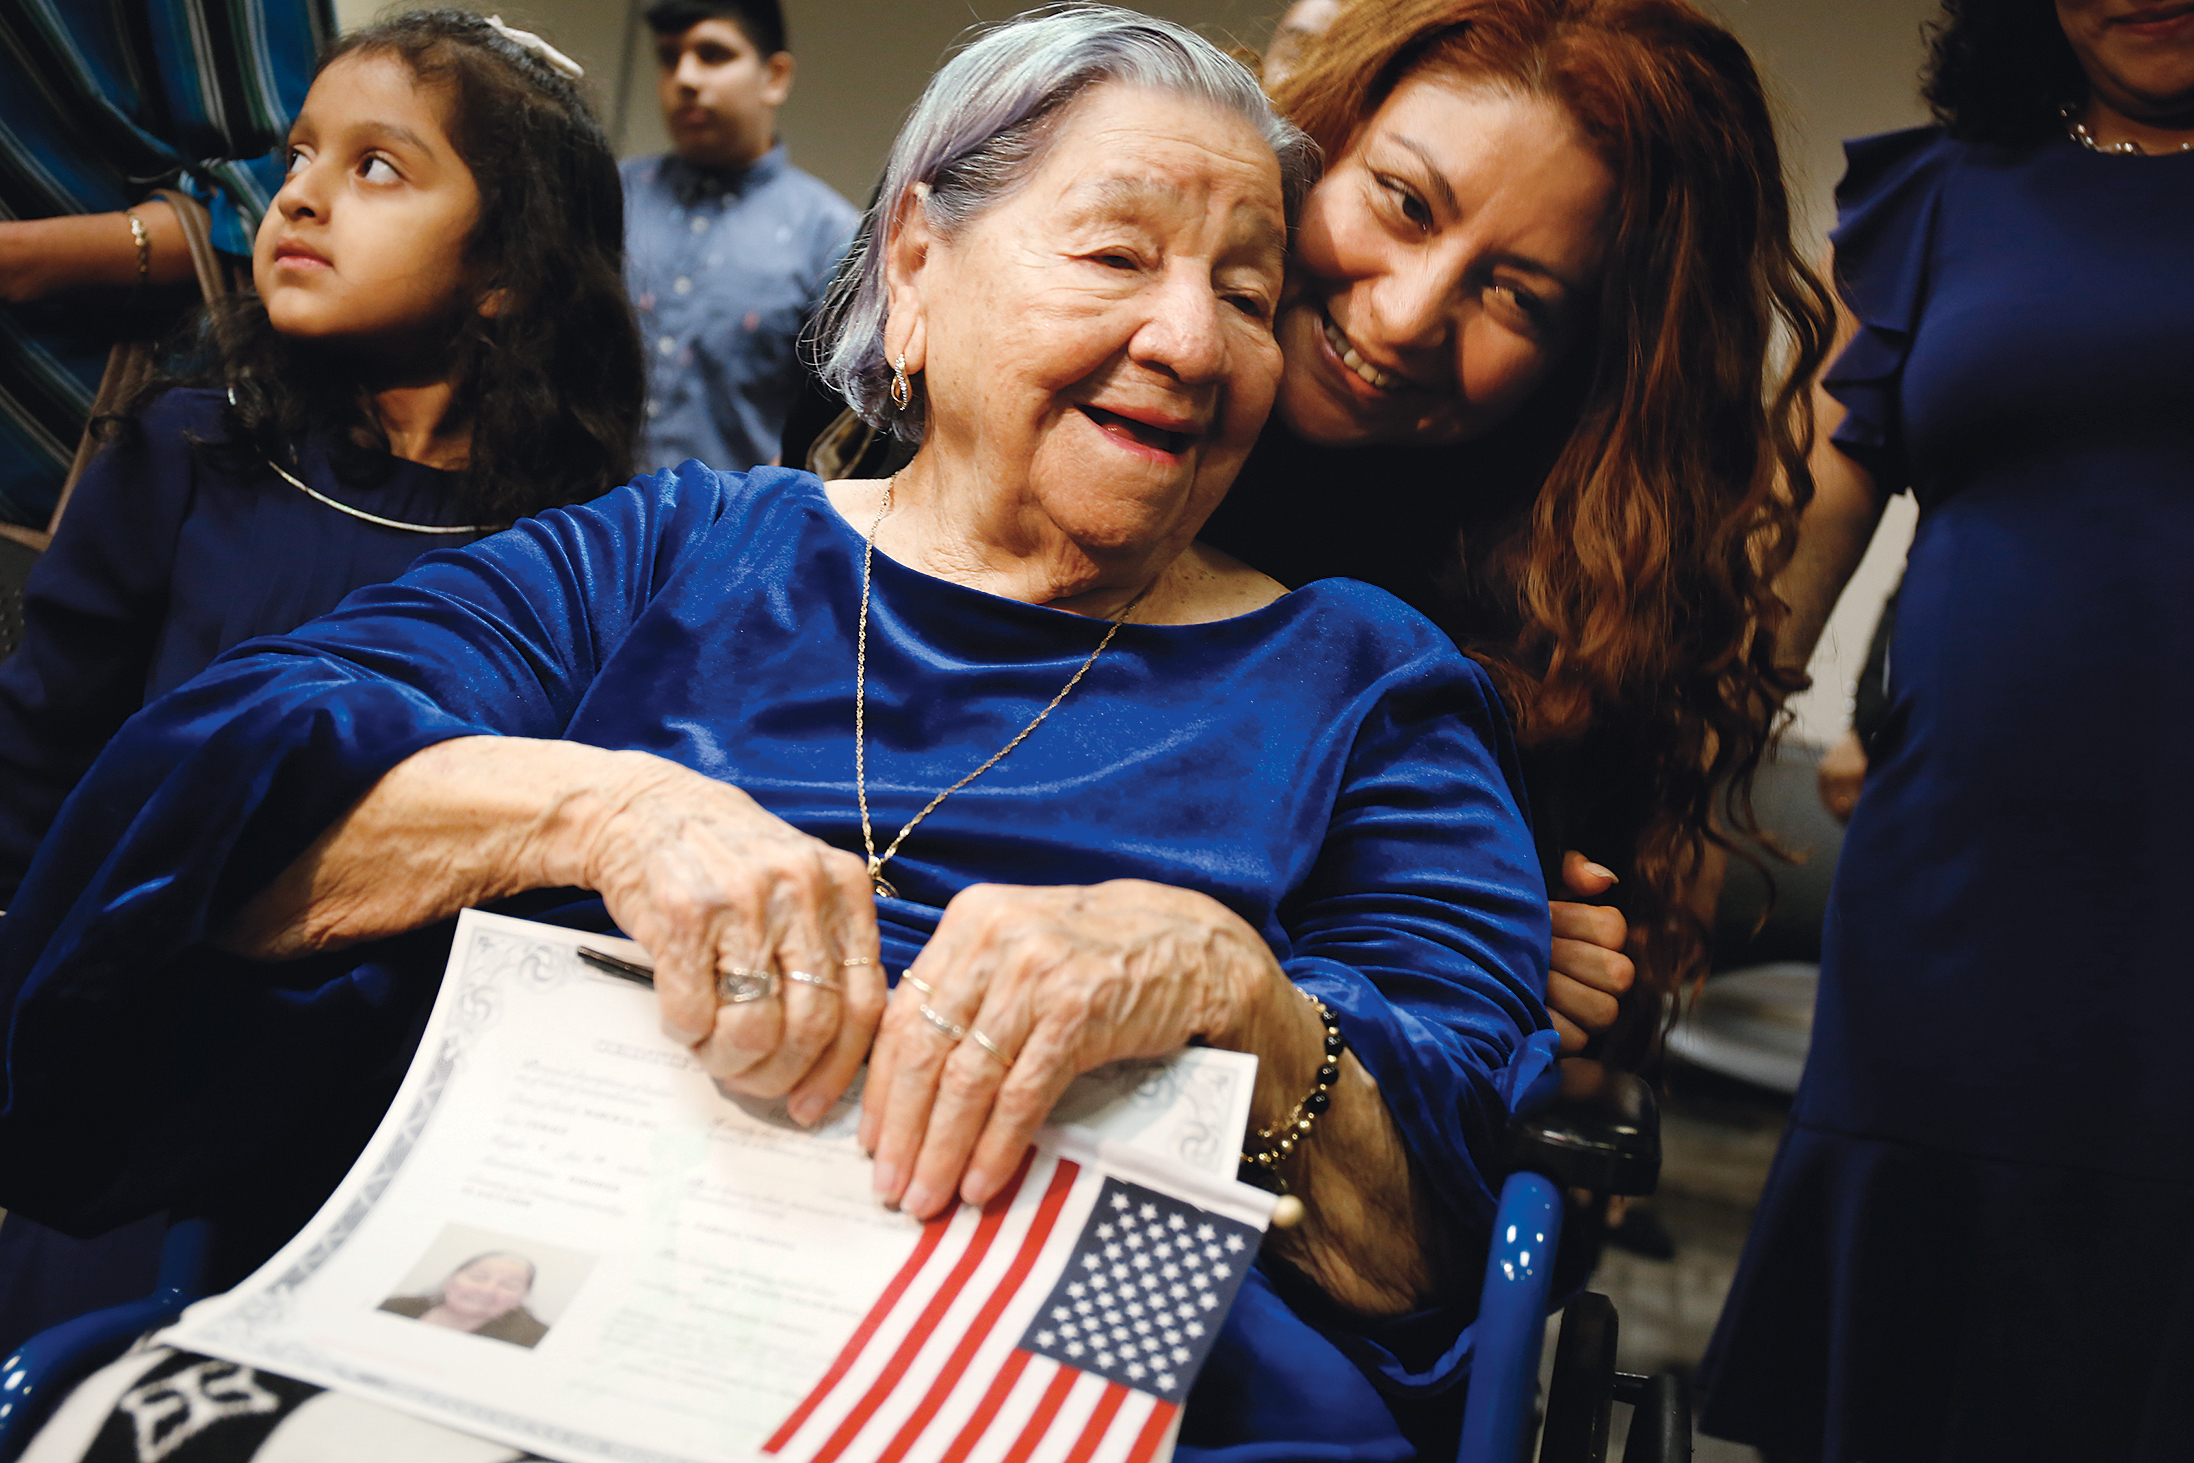 Photographs of Immigrants Becoming U.S. Citizens: US Citizenship and Immigration Services, Washington Field Office, November 6, 2018. Maria Valles de Bonilla took the oath at age 106.